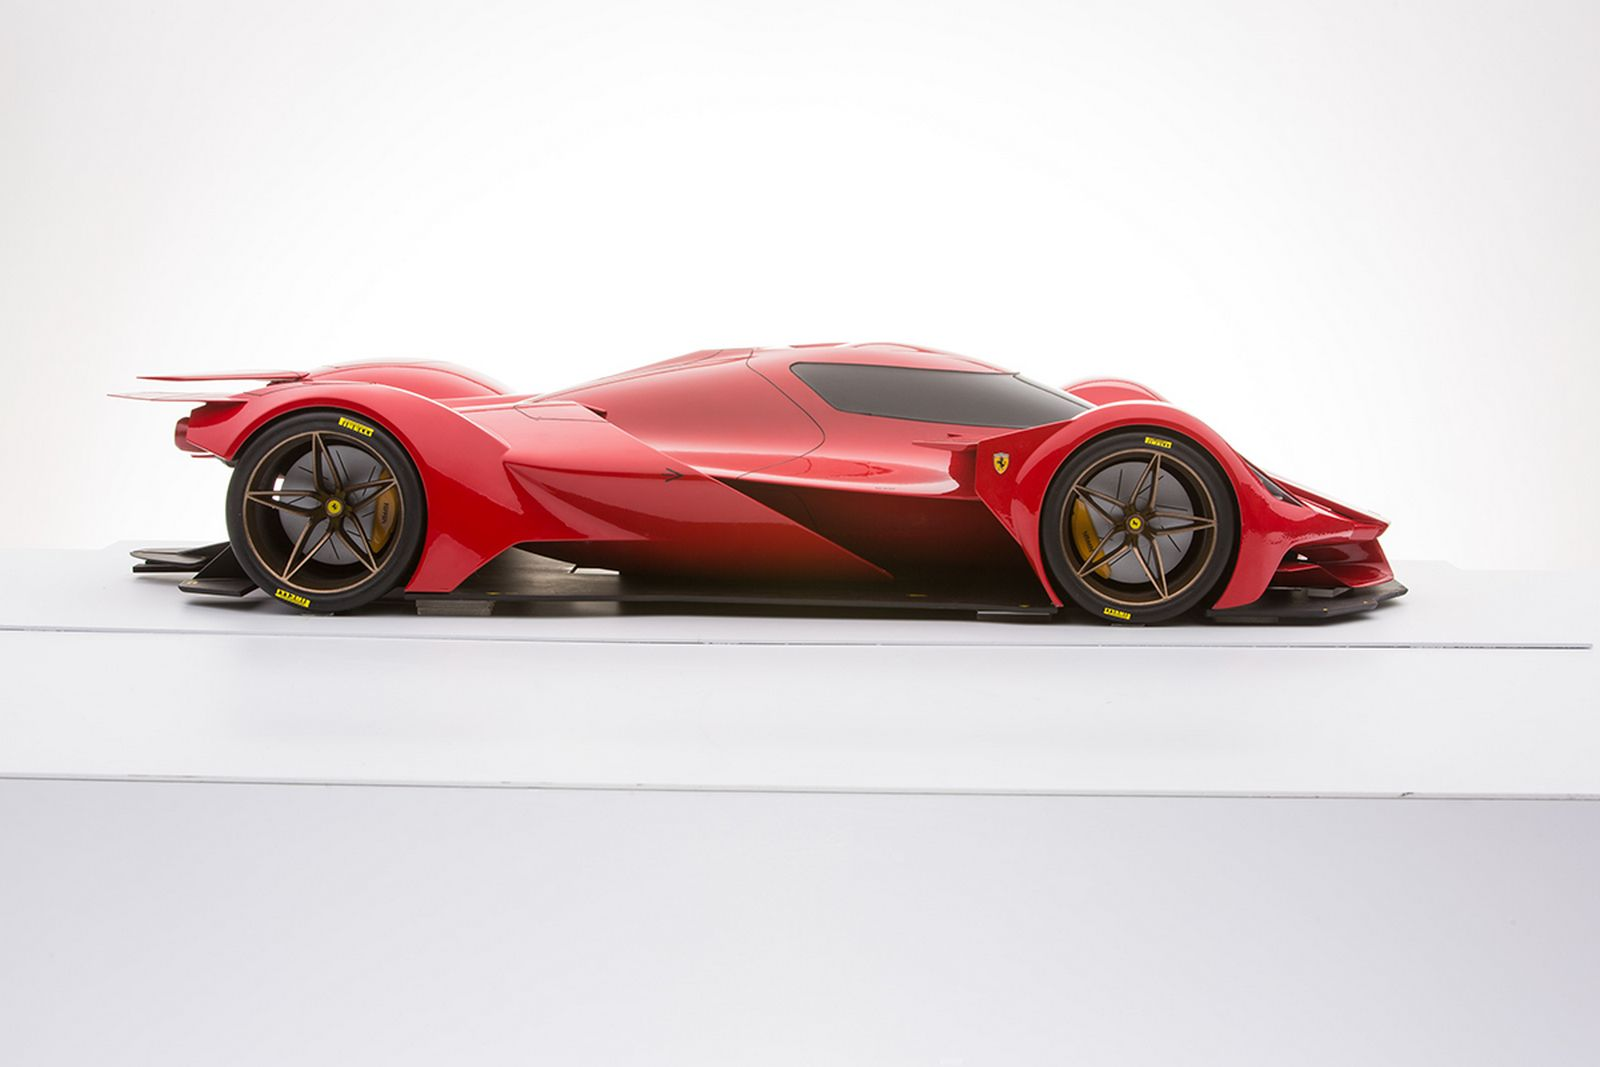 supercars 2018 nissan html with Futuristic Ferrari Le Mans Prototype on Maserati granturismo mc stradale 2 Wallpapers furthermore Lamaserati Hyper Car Hd Wallpapers T93520 likewise Bmw I3 2013 Electric Sports Cars besides 2015 Aston Martin Vulcan additionally 2016 Nissan Altima Gets Sr Model.